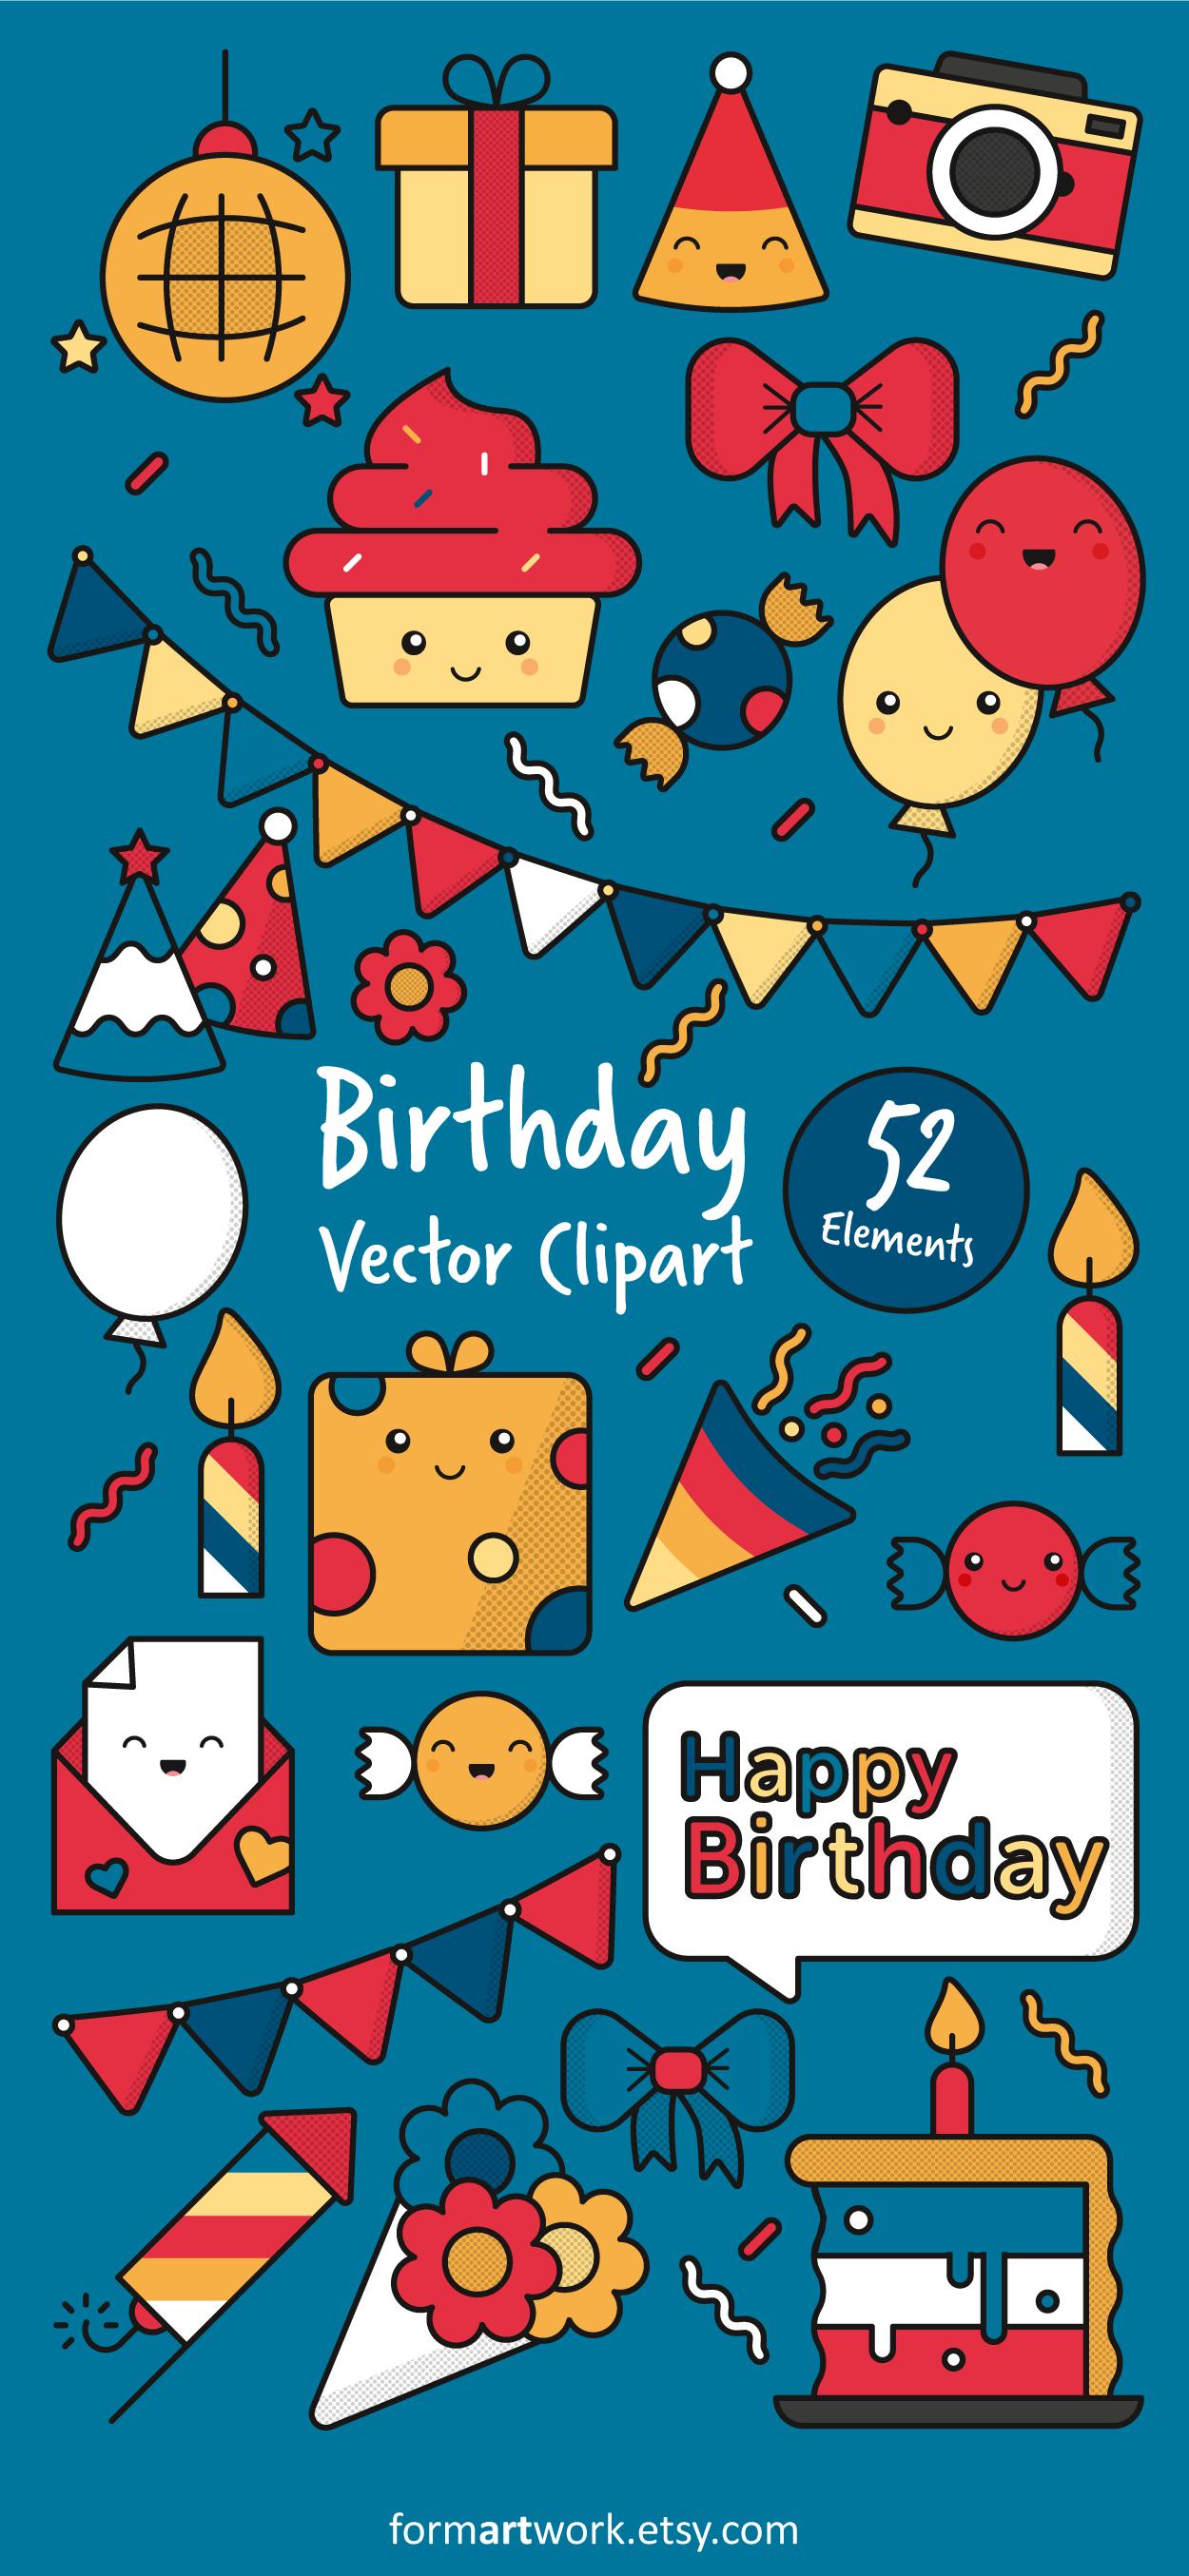 Cute Birthdayparty Vector Clipart For Your Creative DIY Projects Perfect Graphics Invitations